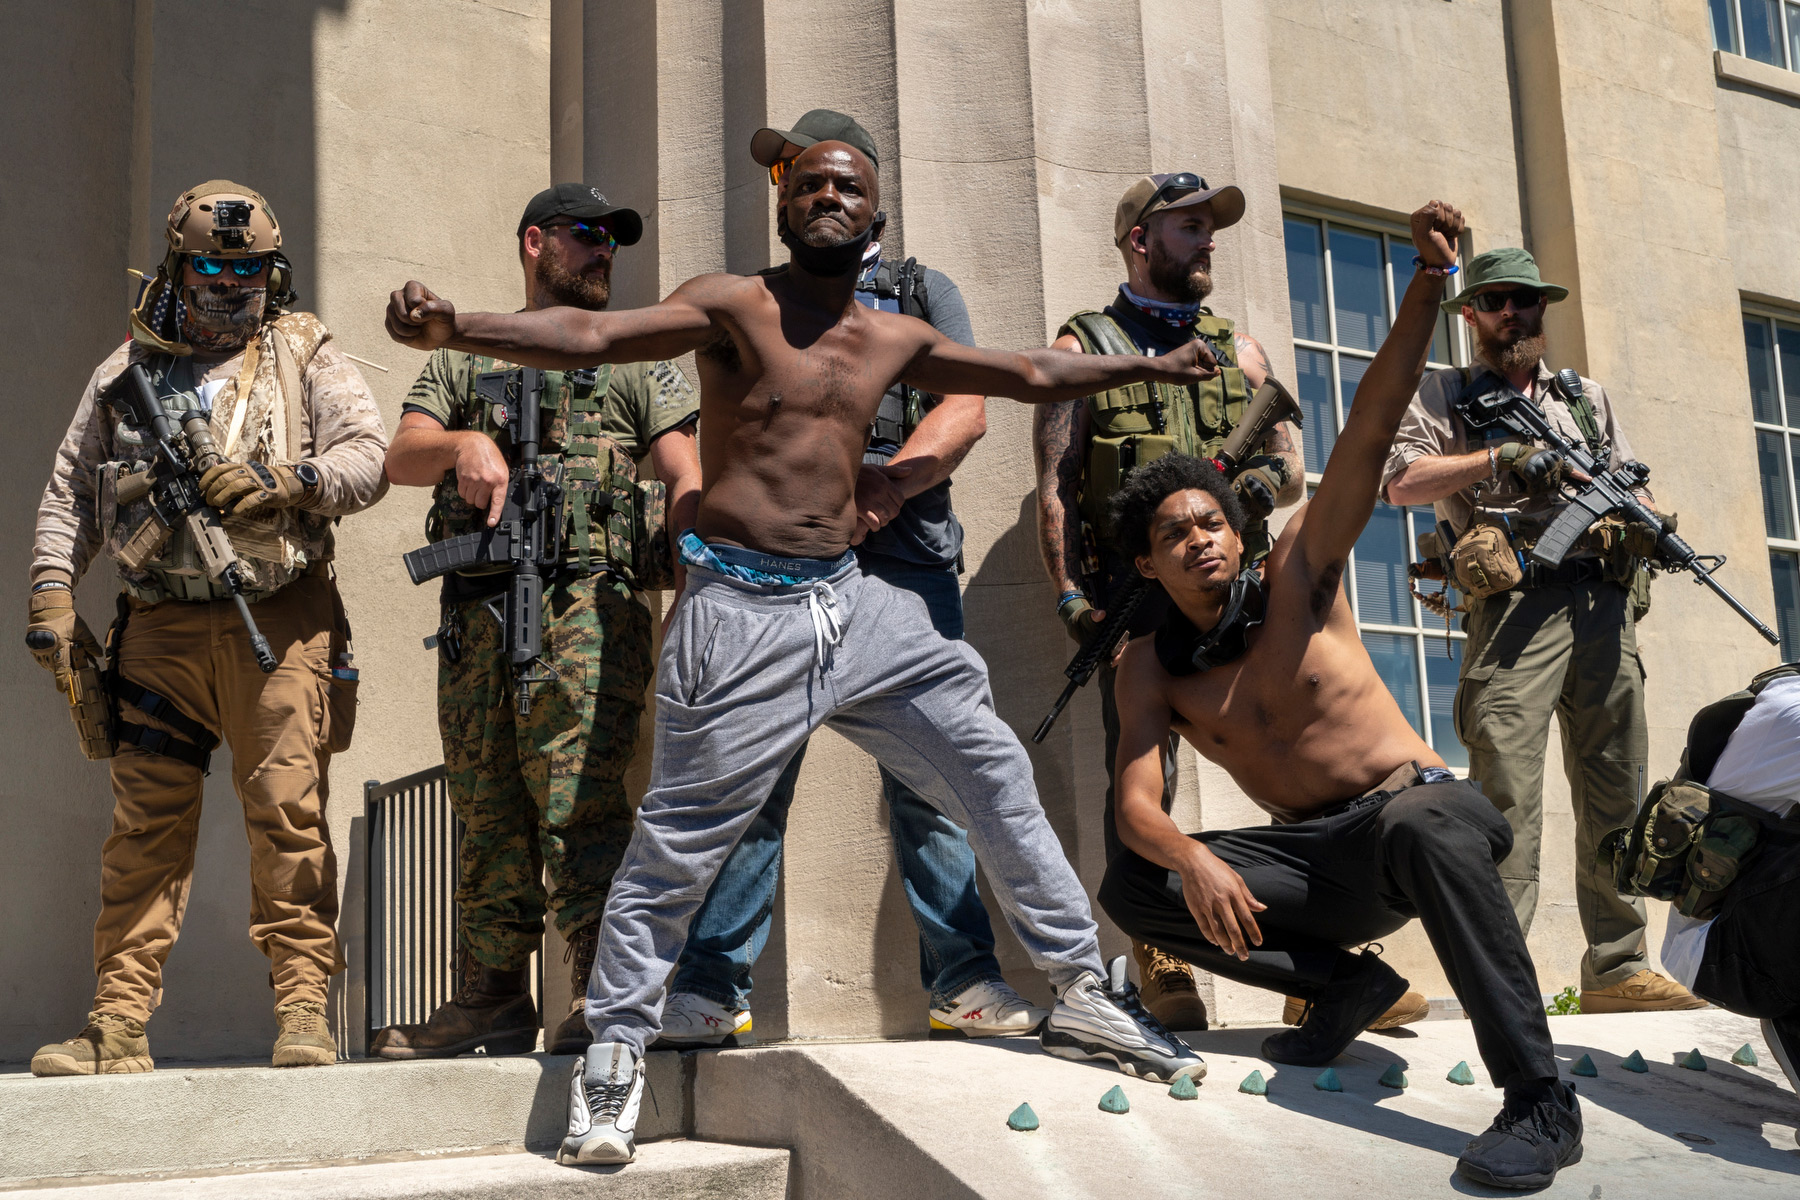 Louisville, Ky., Sept. 5, 2020. Protesters taunt militia members who had marched on Breonna Taylor Square.